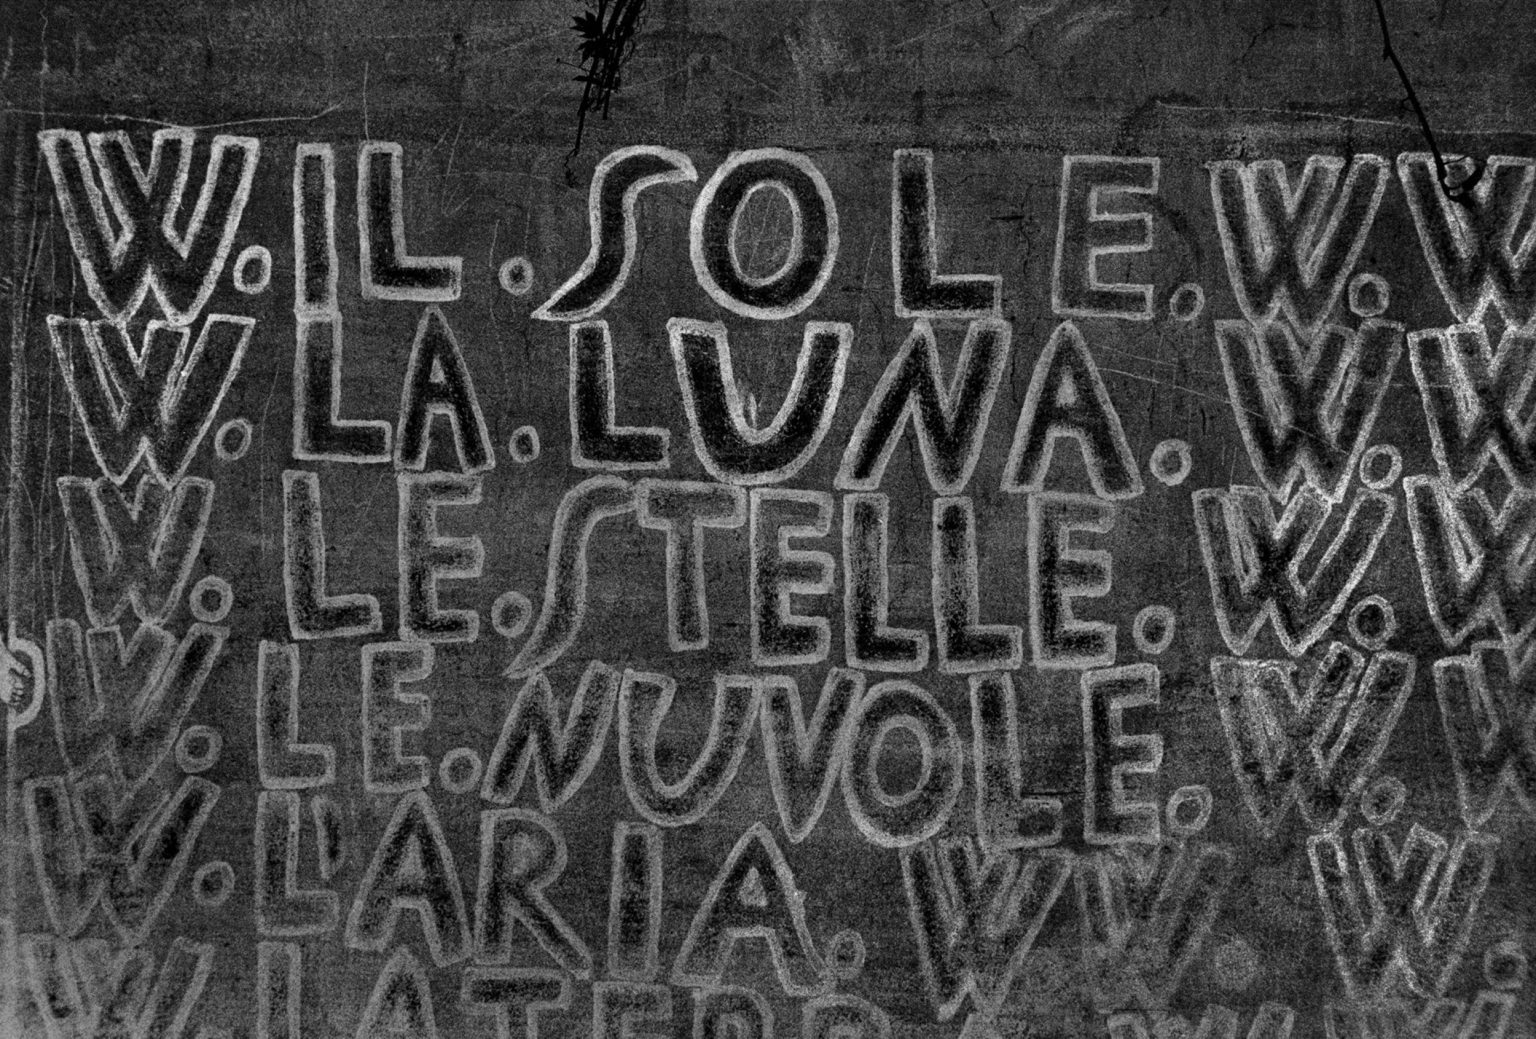 """Colorno (Parma), 1968-1969 - Inside a mental institution: writings on the wall made by the patients. ><  Colorno (Parma), 1968-1969 - All'interno dell'istituto psichiatrico: le scritte sul muro lasciate dai pazienti.<p><span style=""""color: #ff0000""""><strong>*** SPECIAL   FEE   APPLIES ***</strong></span></p>"""